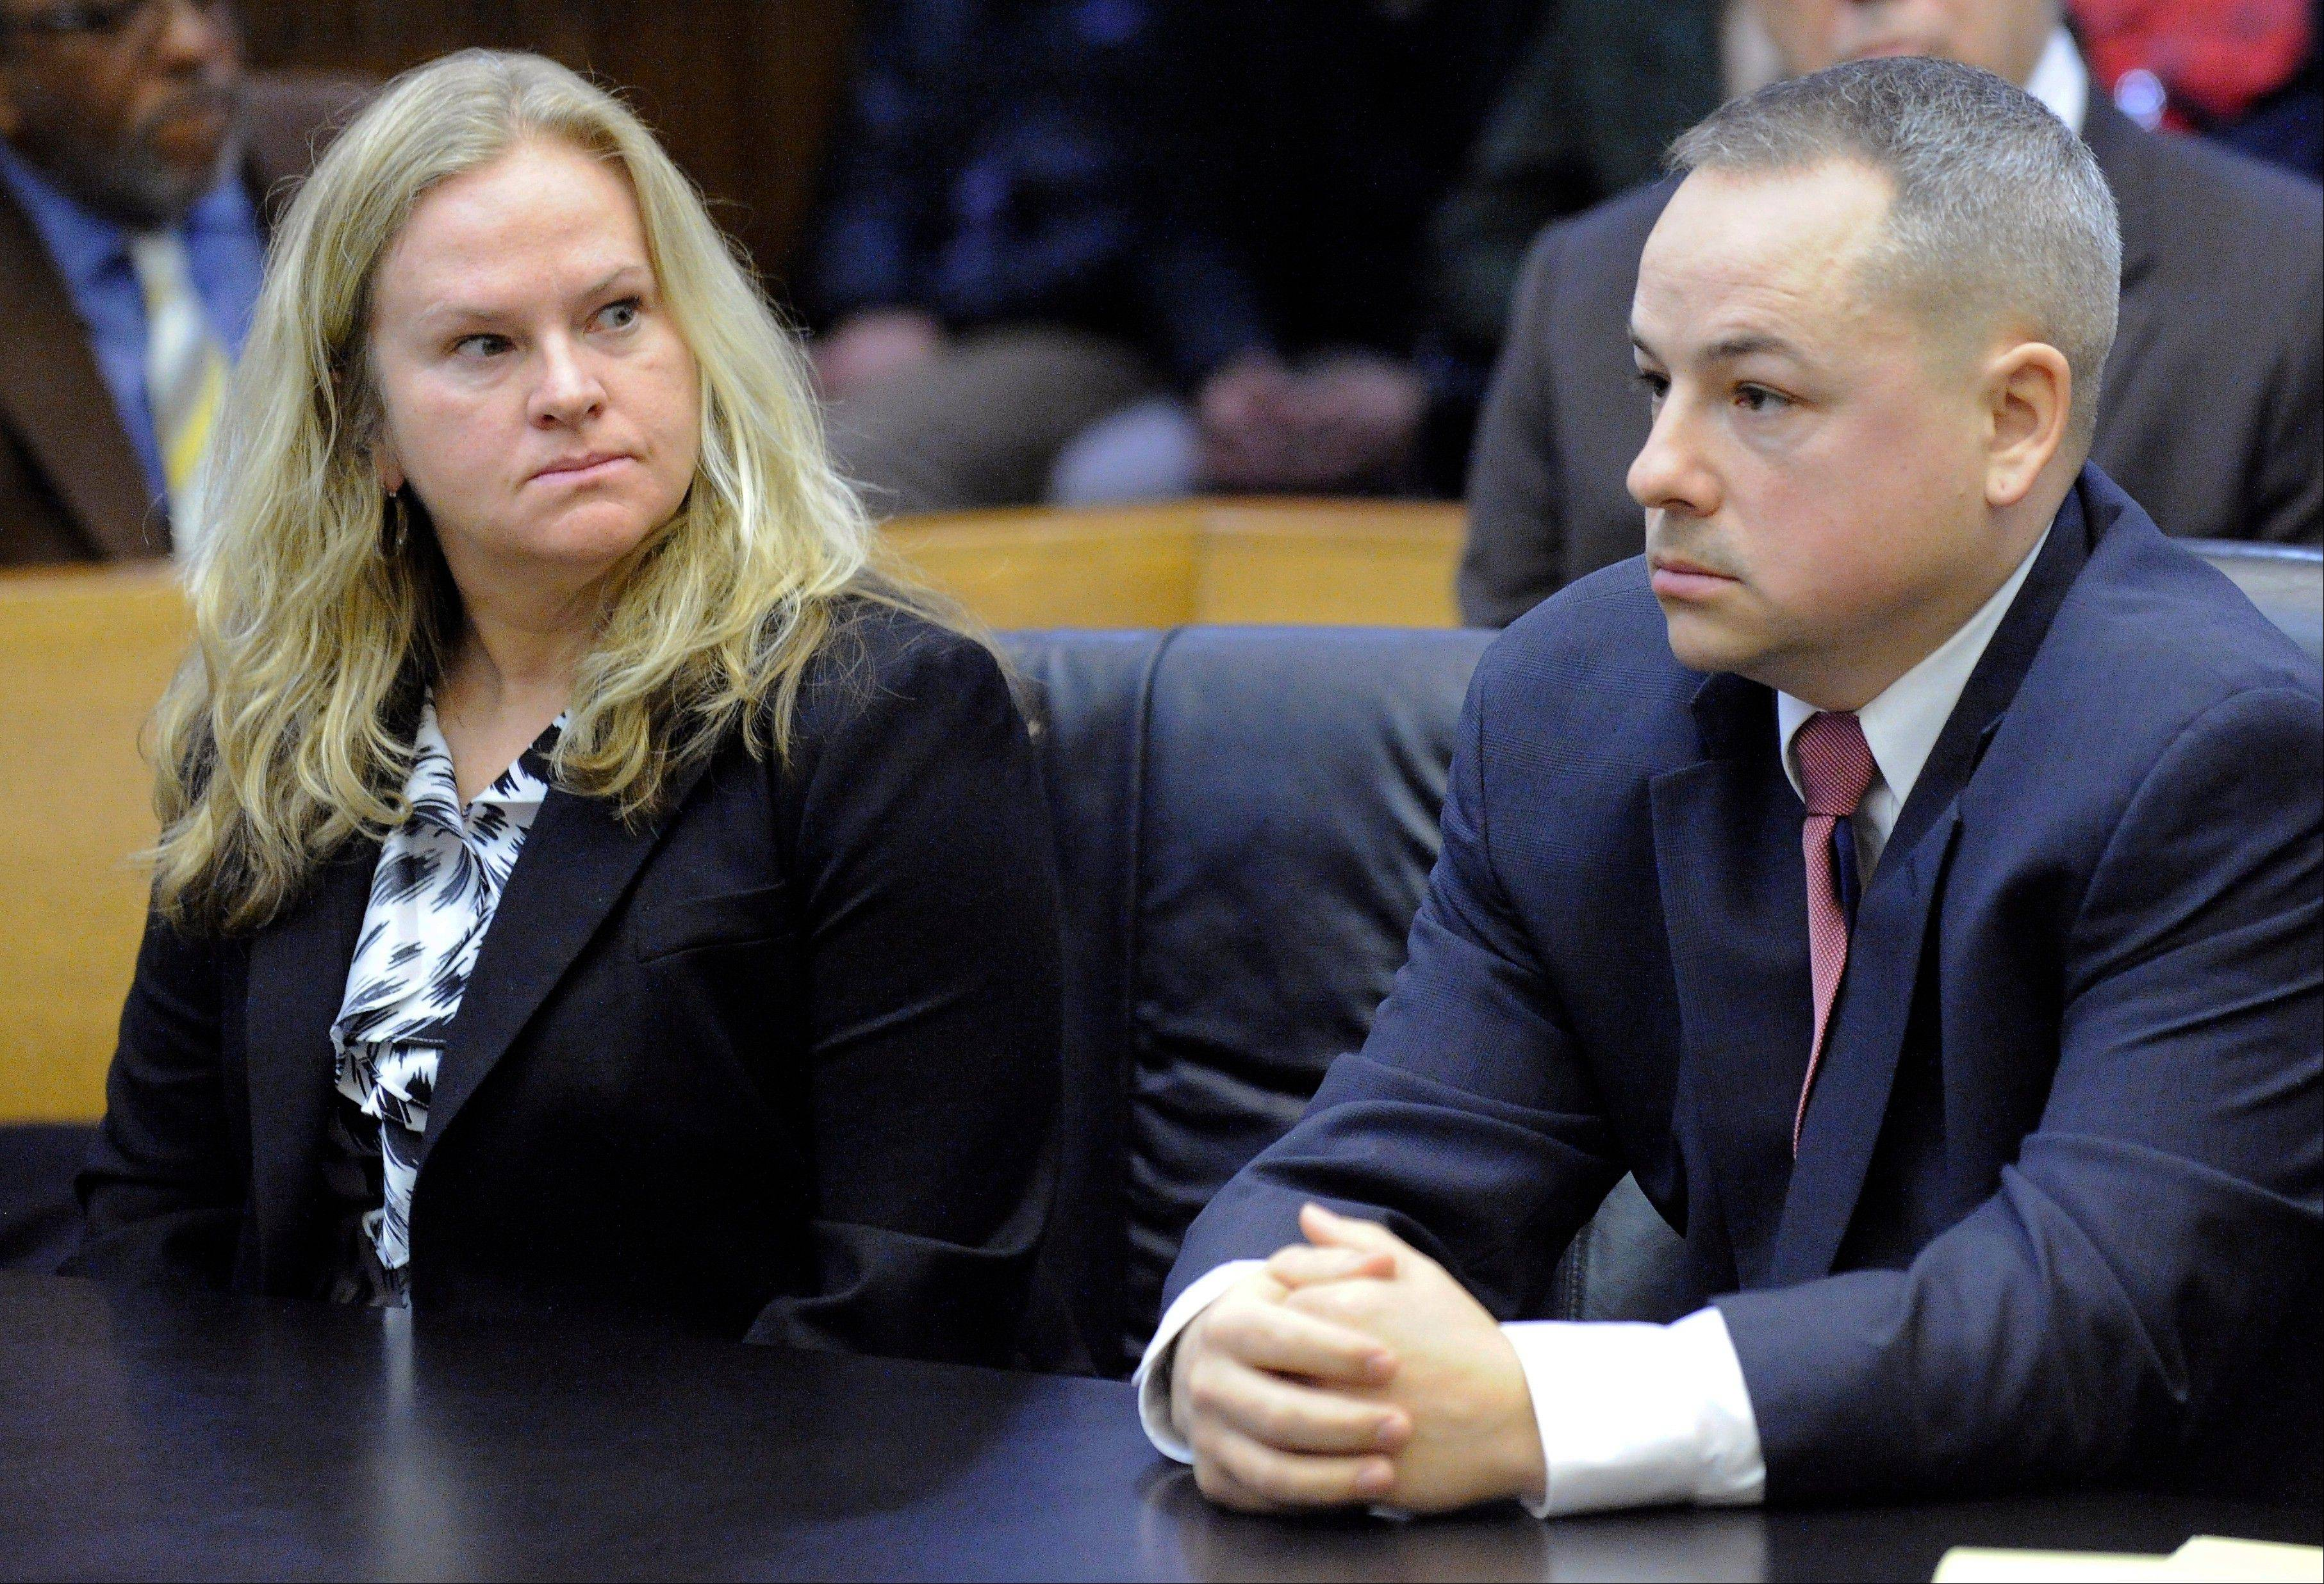 Defendant Joseph Weekely, right, and A&E producer Allison Howard, who was at the raid, sit in court before Judge Cynthia Gray Hathaway at Frank Murphy Hall of Justice in Detroit. Weekley goes on trial Wednesday, May 29, 2013. He is charged with involuntary manslaughter in the death of 7-year-old Aiyana Stanley-Jones, who died when Weekley's gun fired as police, accompanied by a reality TV crew, raided a Detroit home in search of a murder suspect in May 2010.